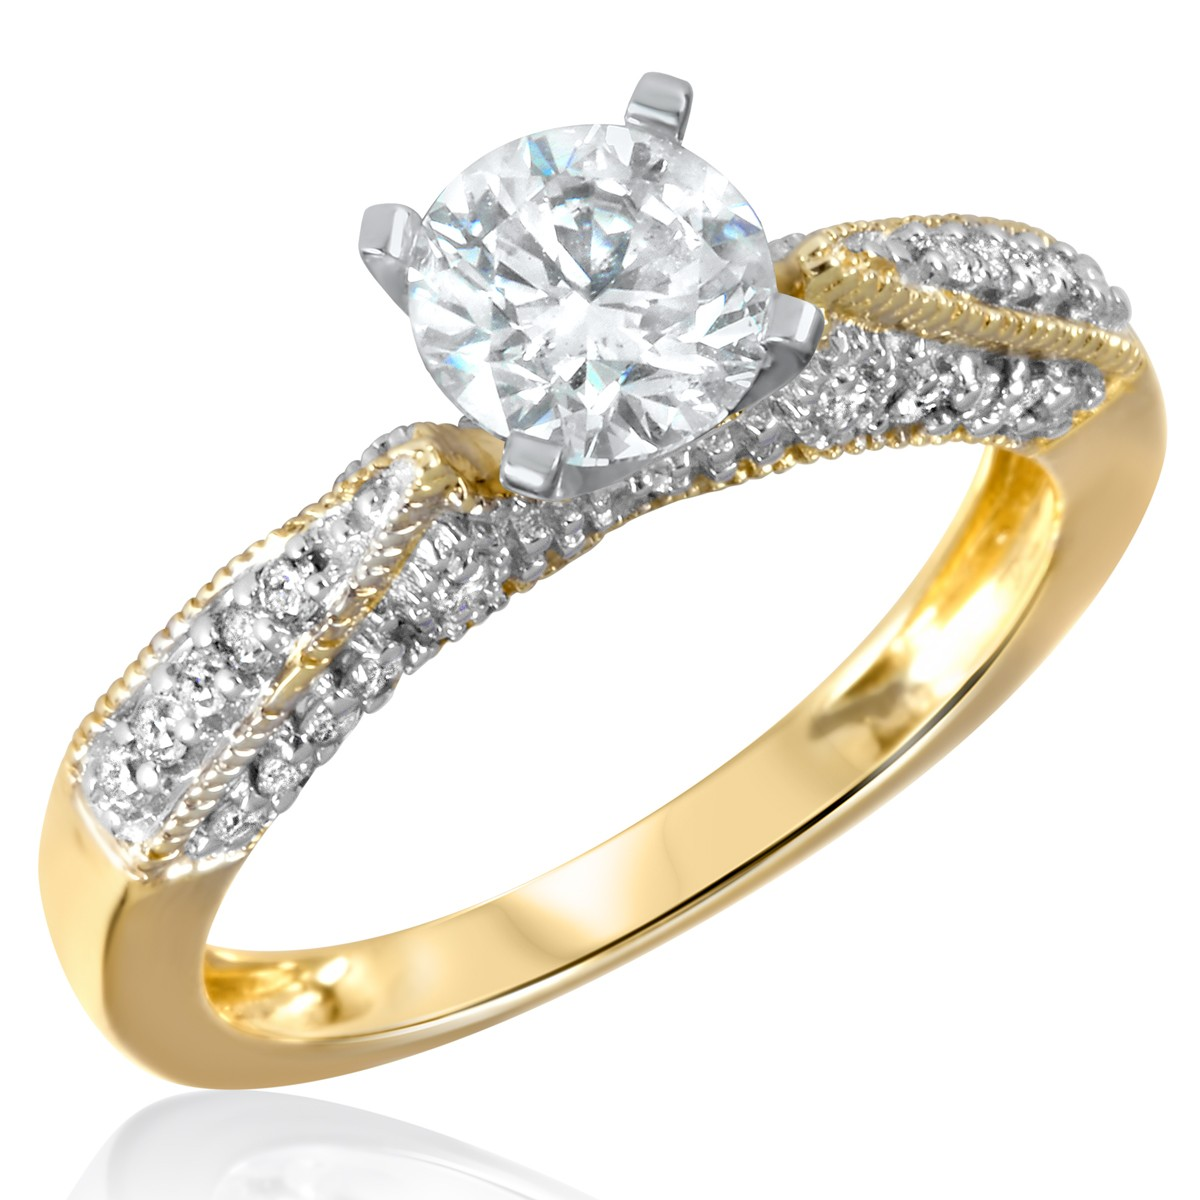 1 1/3 CT. T.W. Diamond Ladies Engagement Ring 14K Yellow Gold